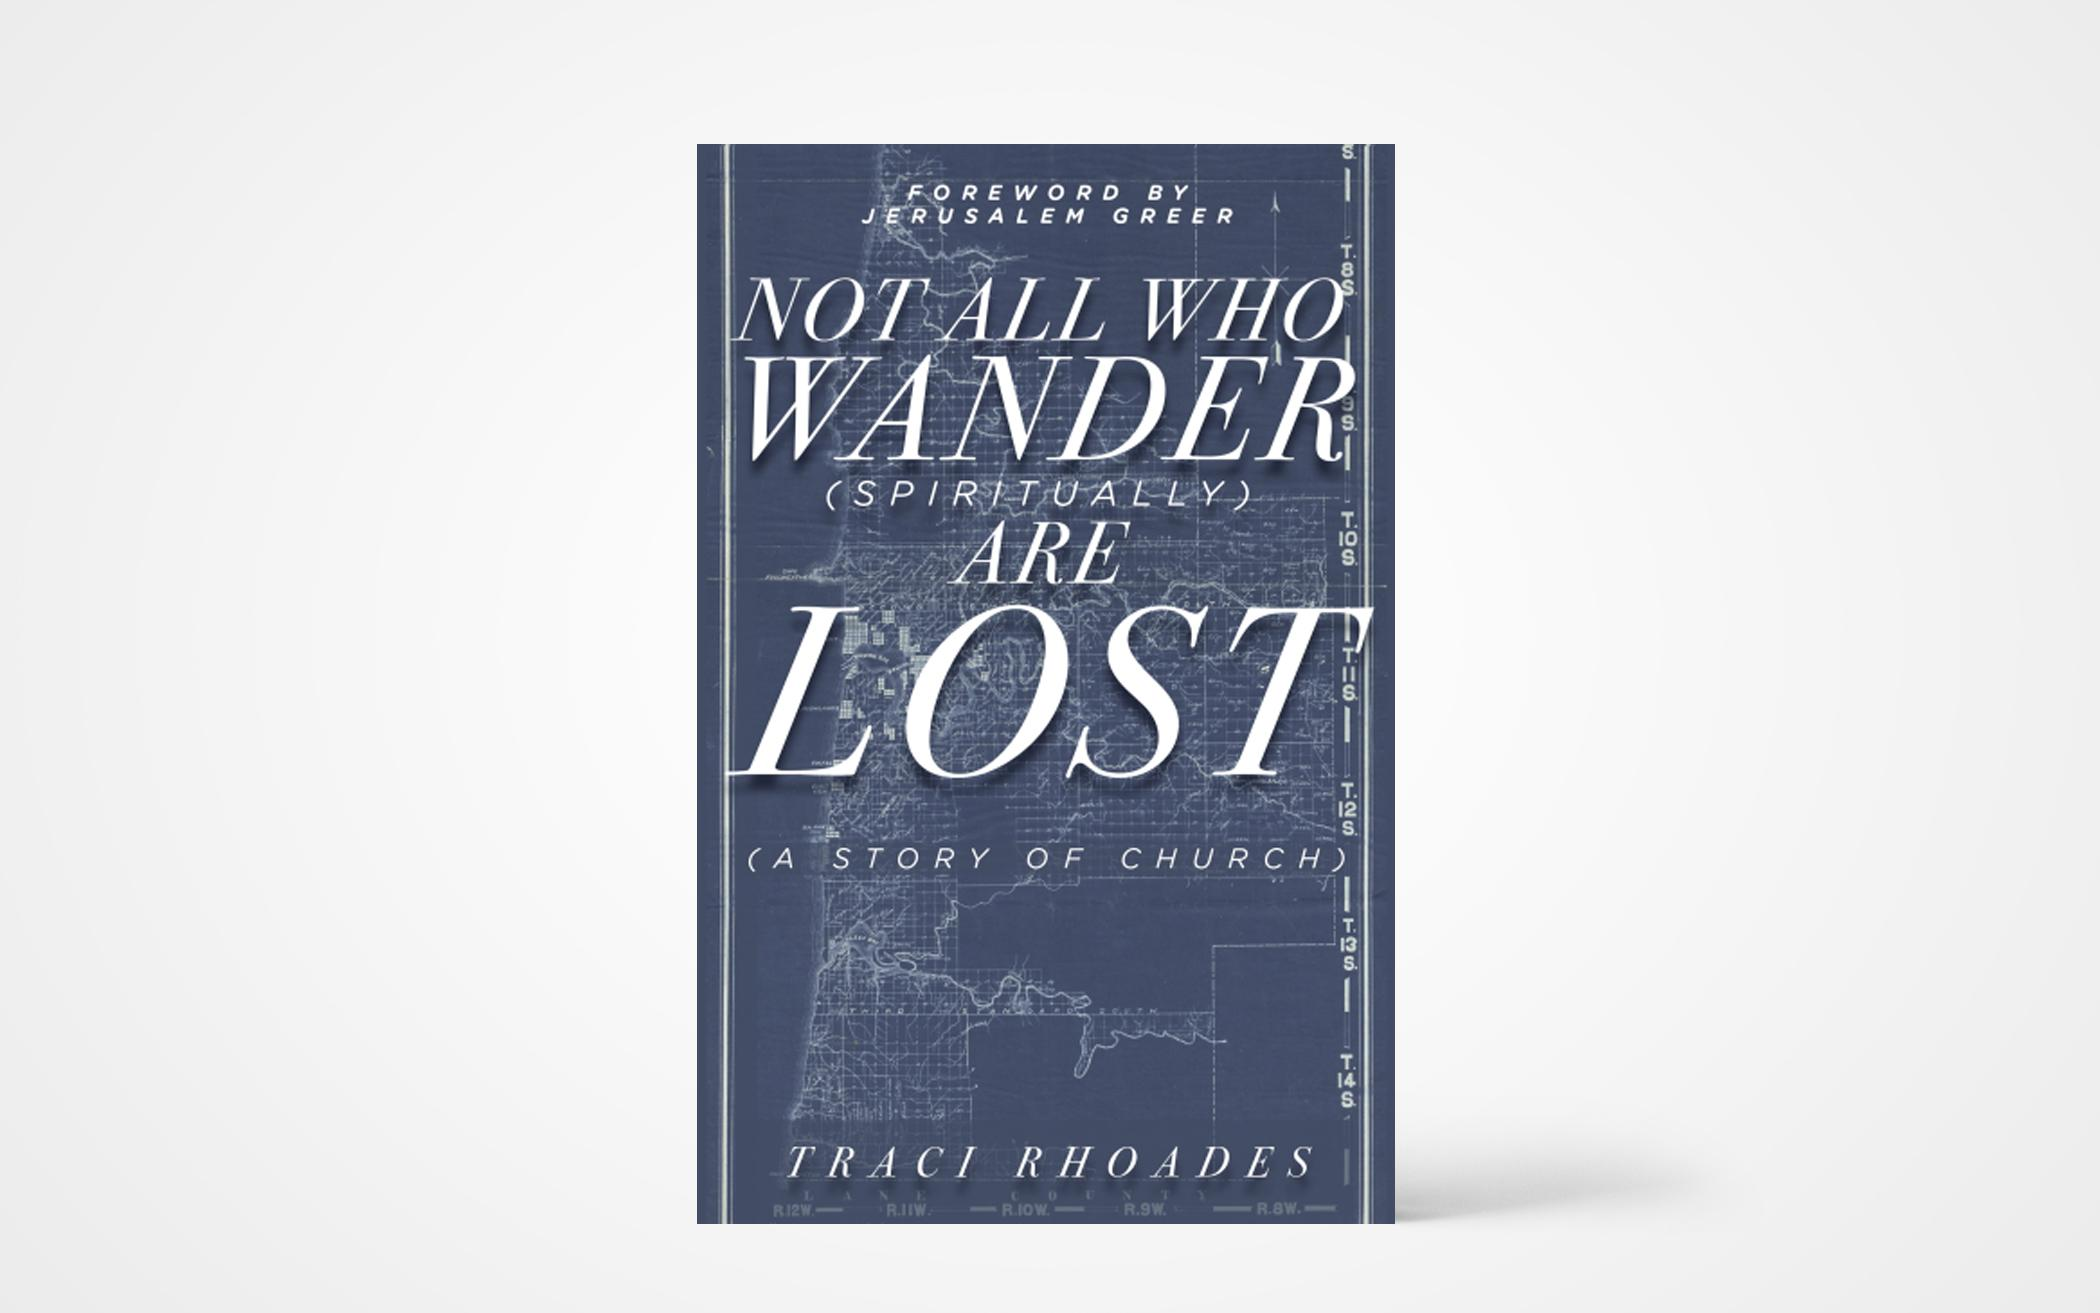 Not All Who Wander (Spiritually) Are Lost